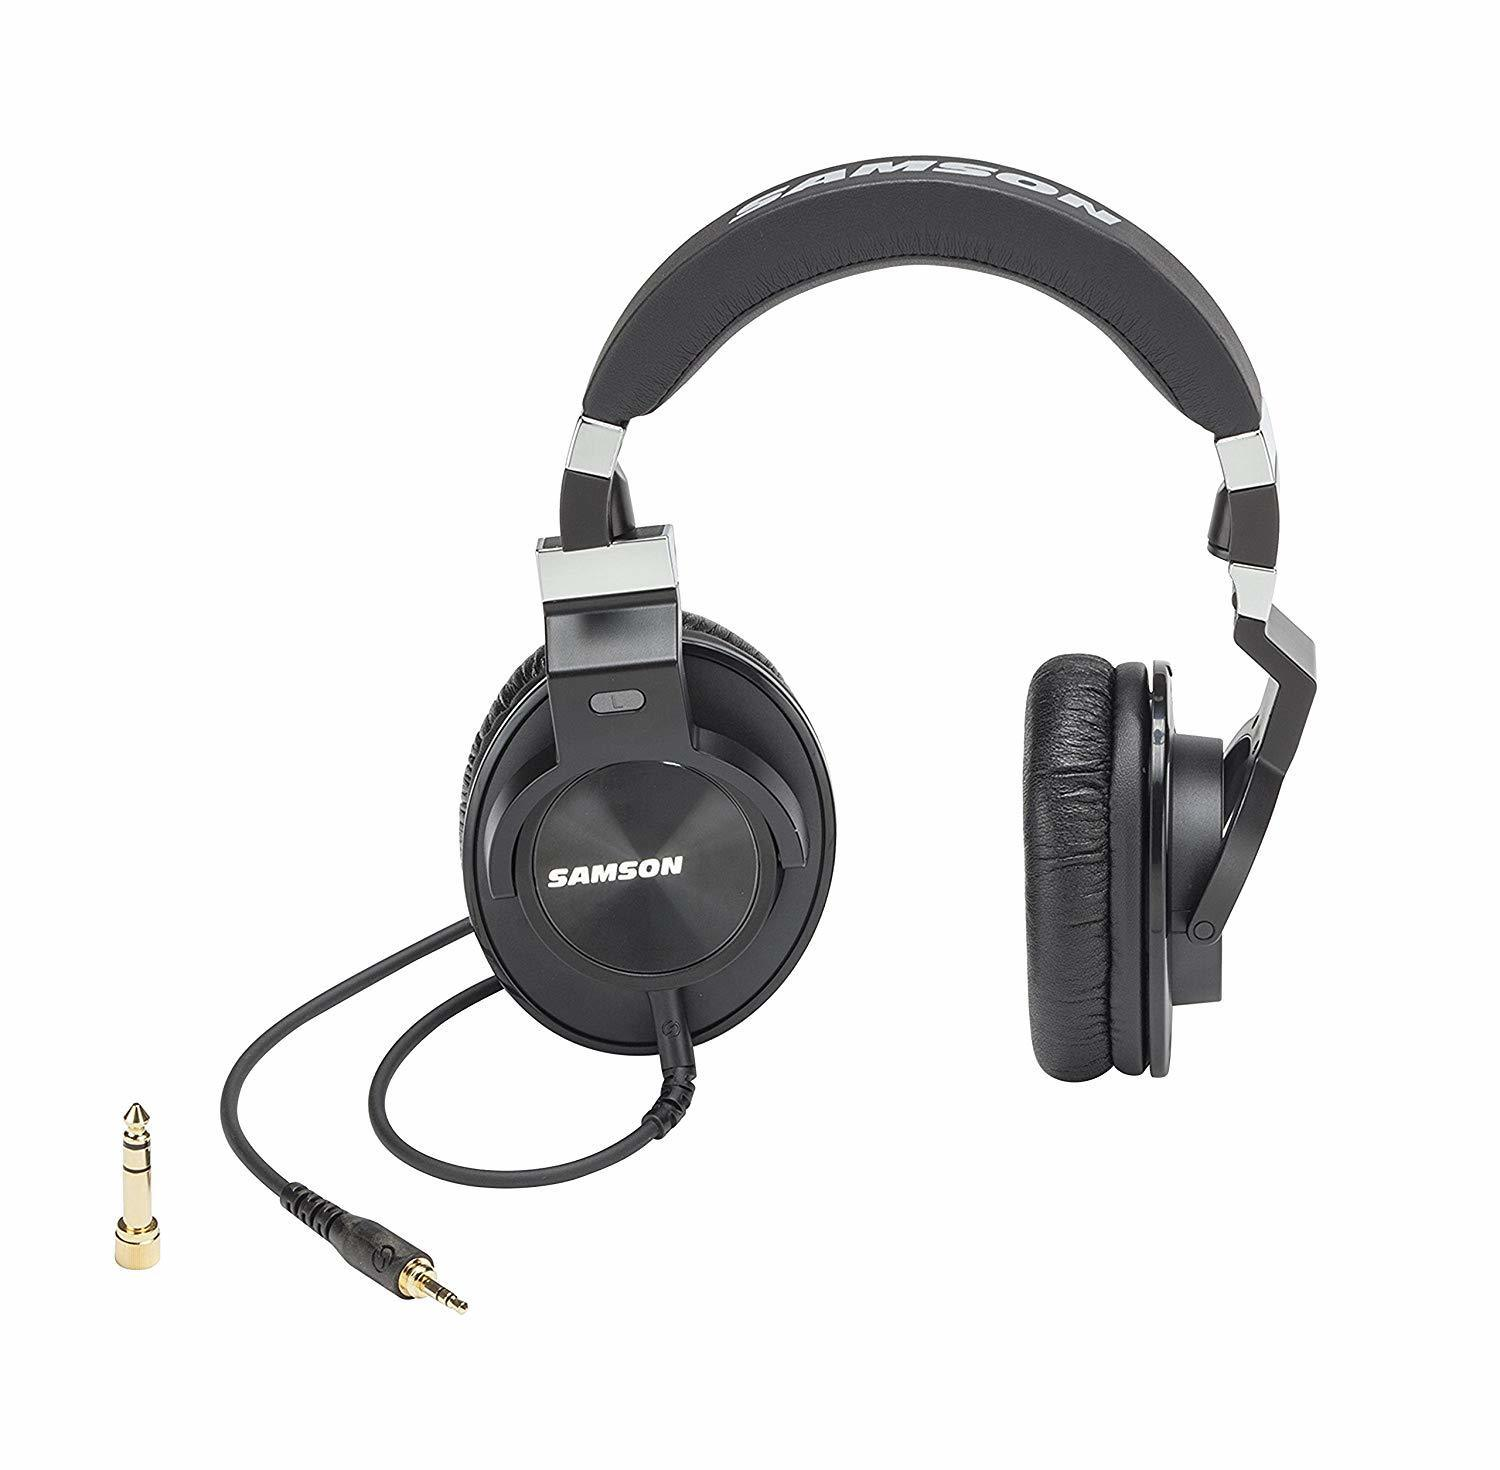 Samson Z25 Professional Closed Back Comfort Wear Earphone Over ear Studio Monitoring Headphones For Studio Record Music Lovers in Headphone Headset from Consumer Electronics